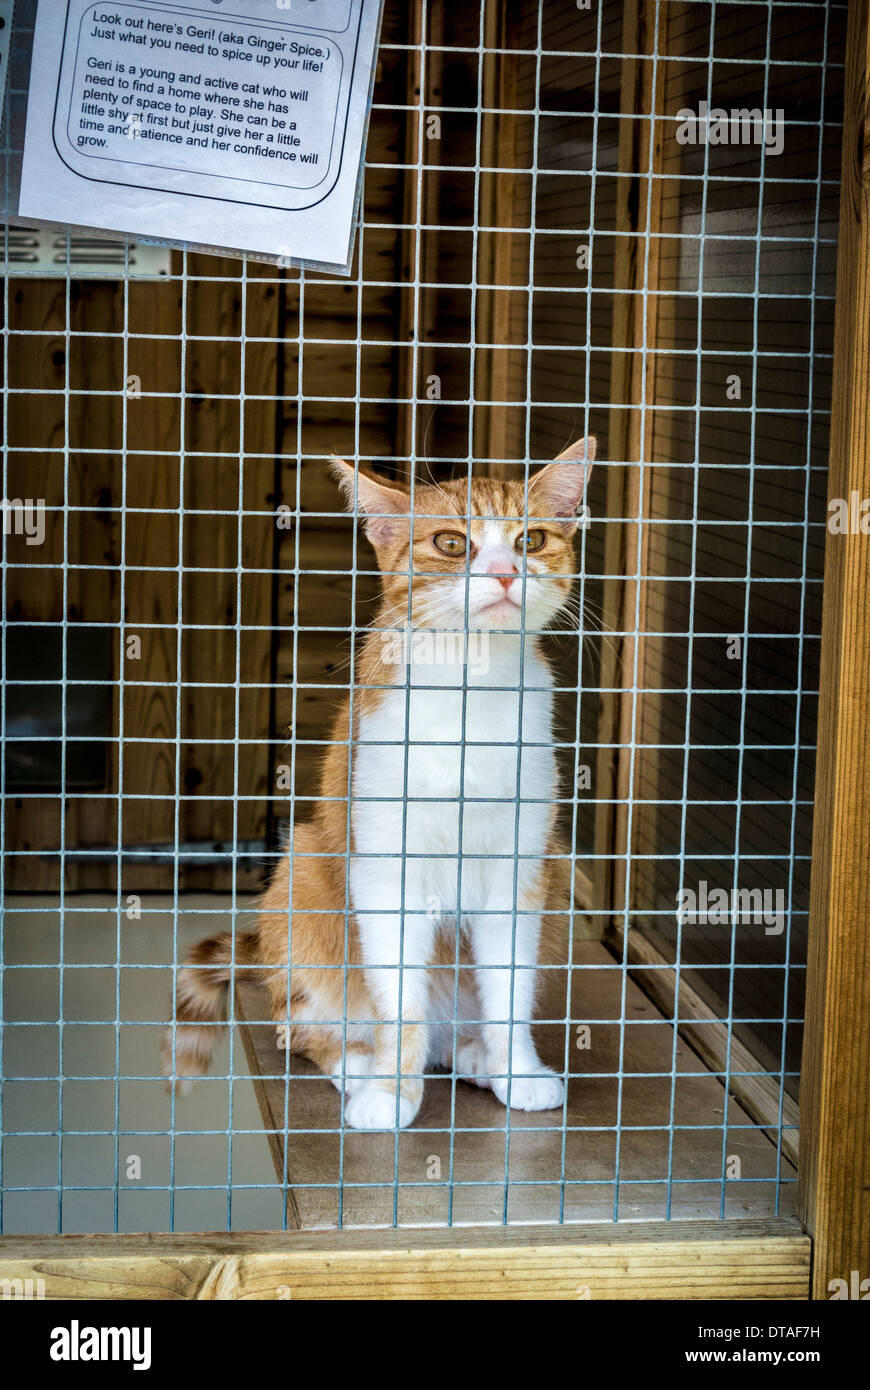 Cat in cage at rescue centre - Stock Image